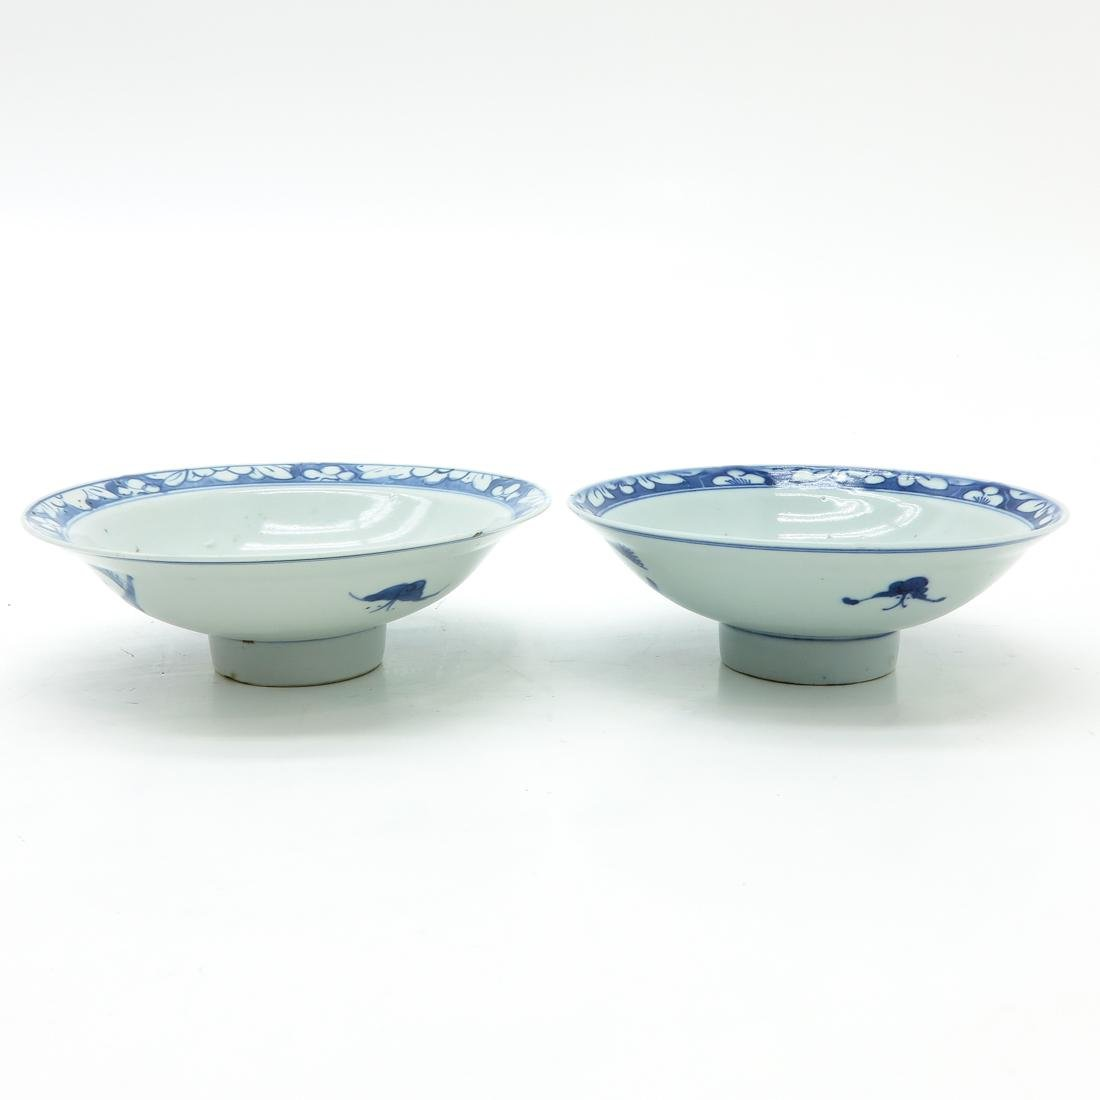 Lot of 2 Bowls - 5